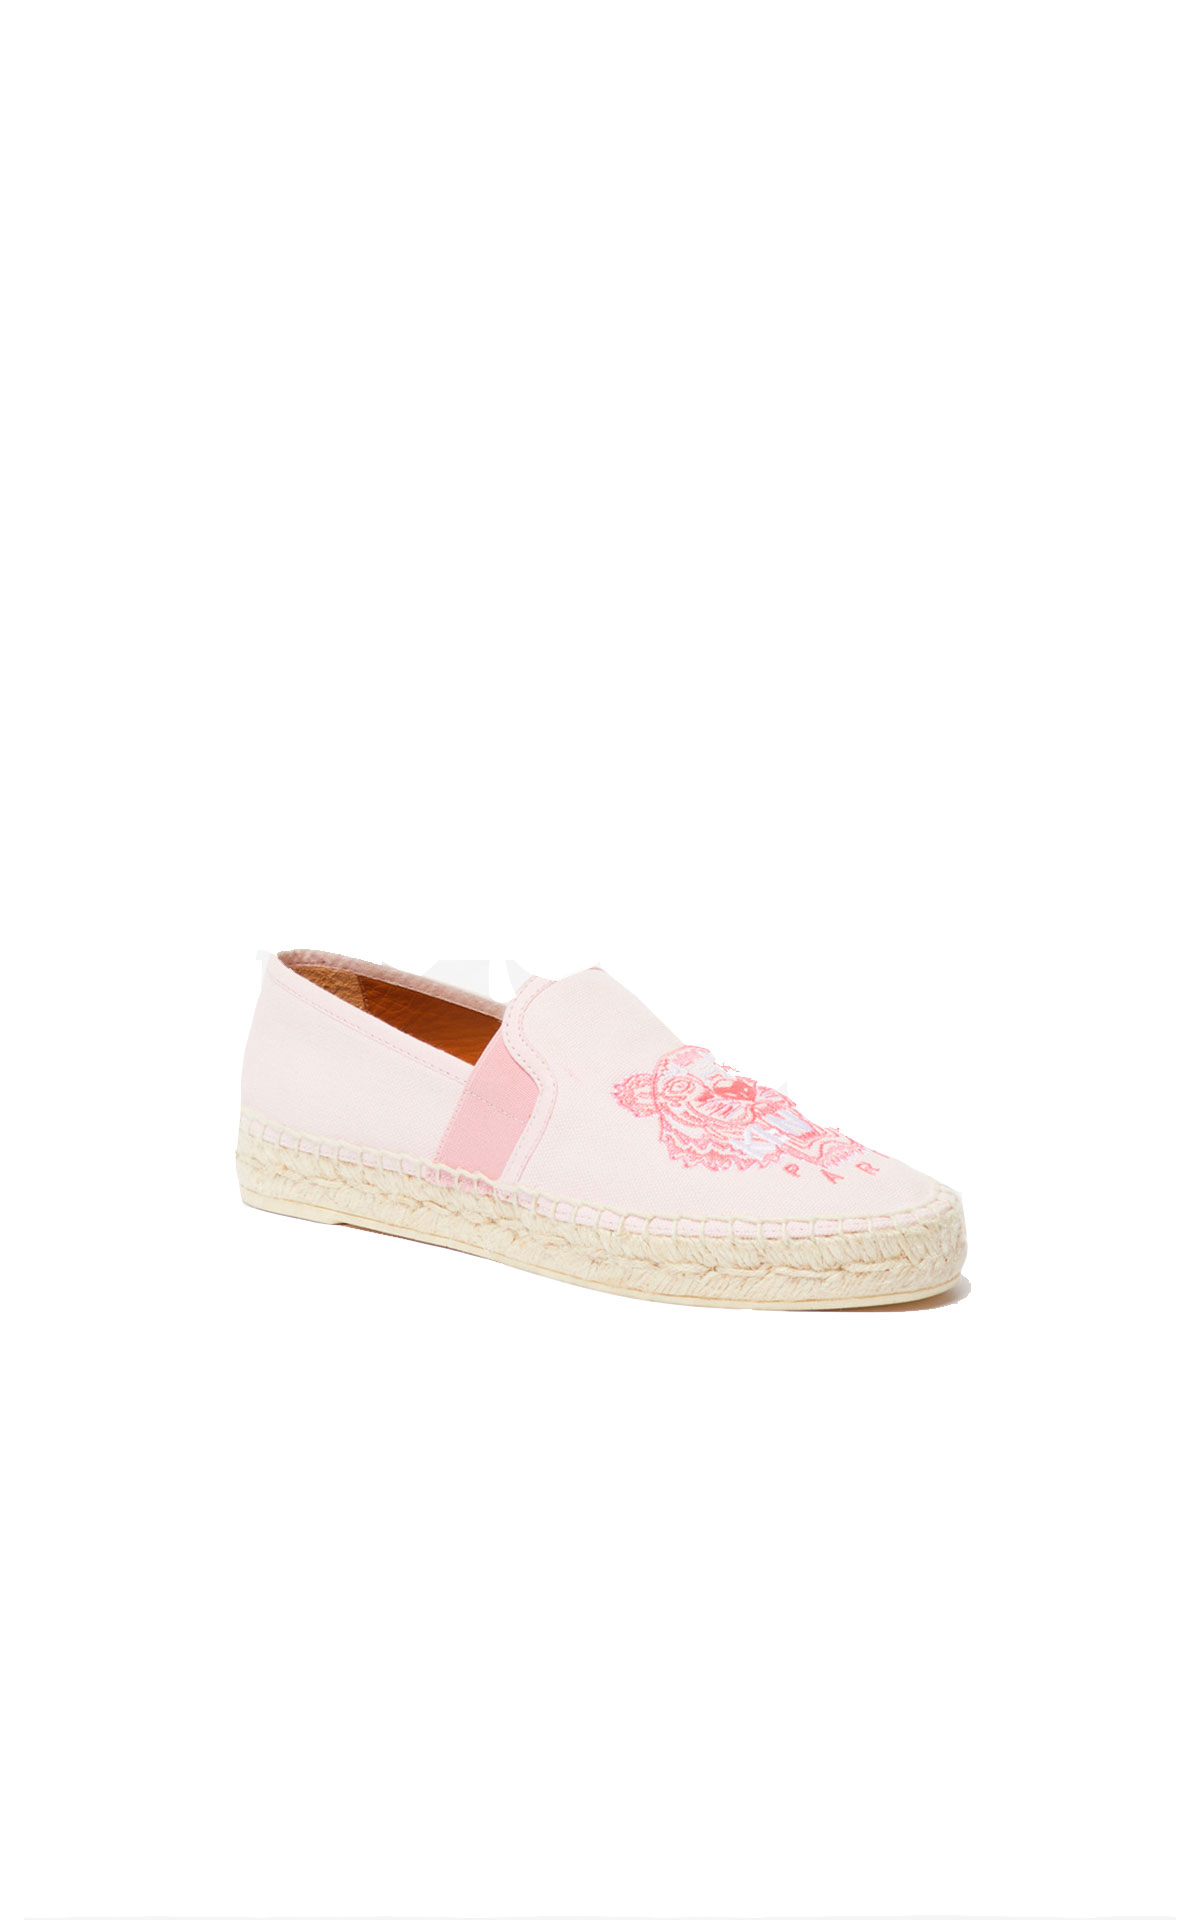 Kenzo Kenzo iconic tiger espadrille from Bicester Village